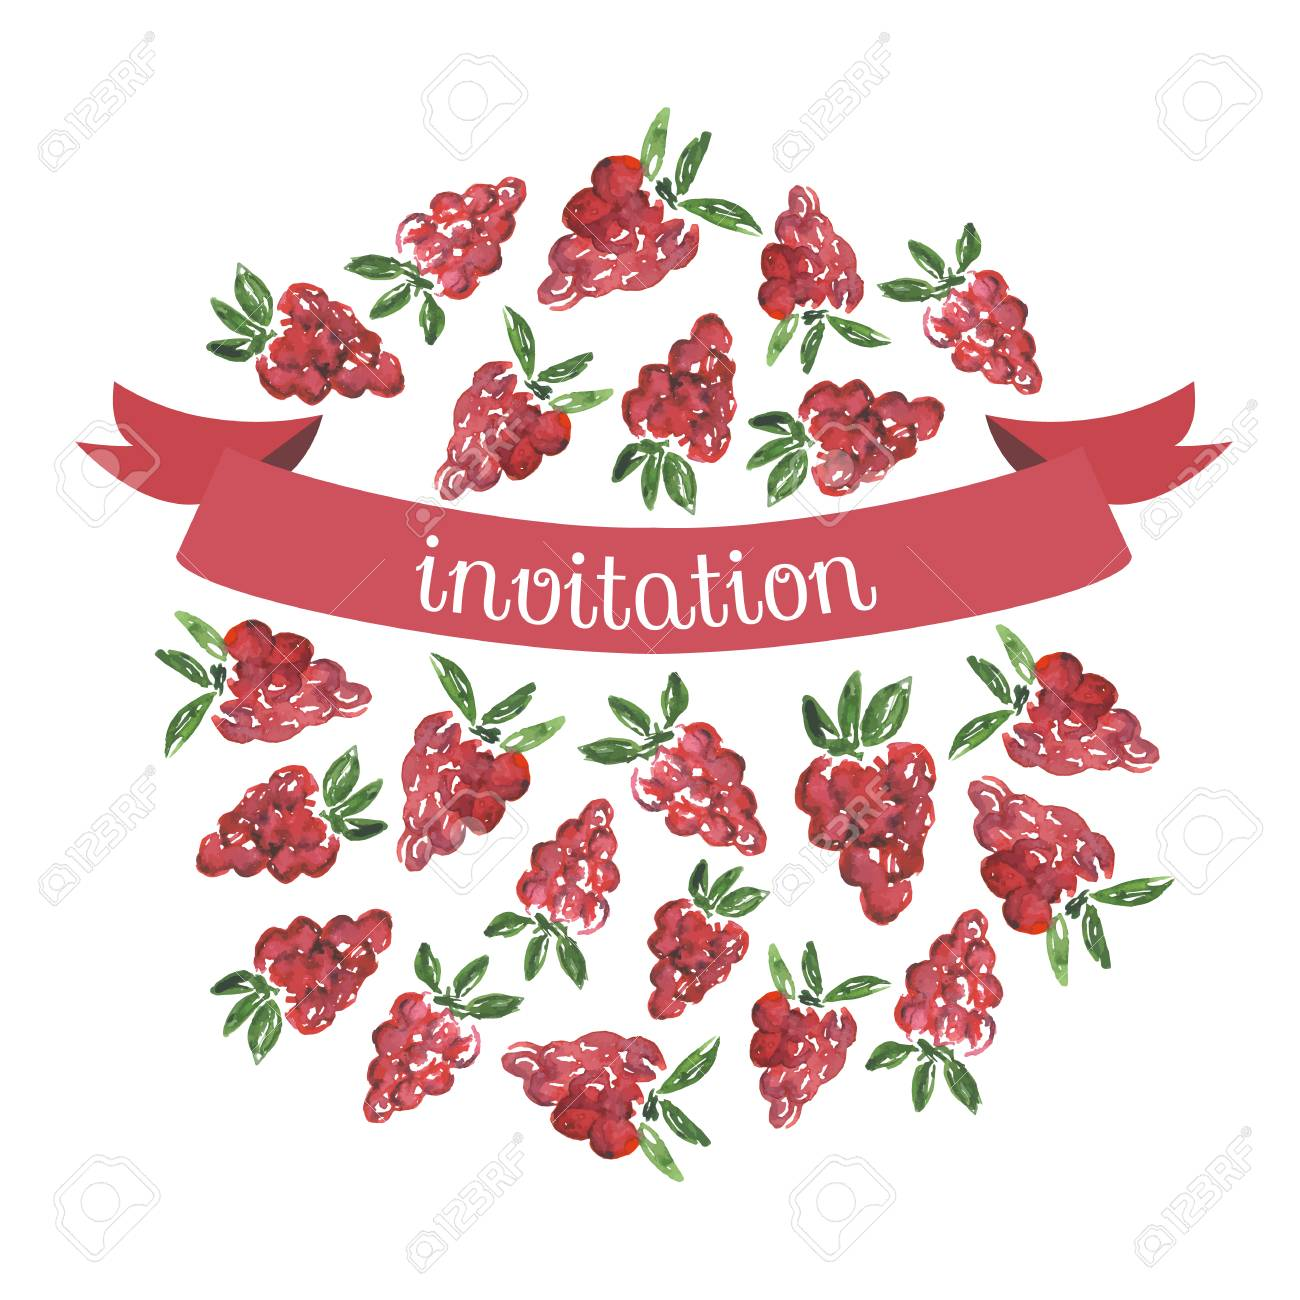 Watercolor Hand Drawn Invitationgreeting Card With Raspberry